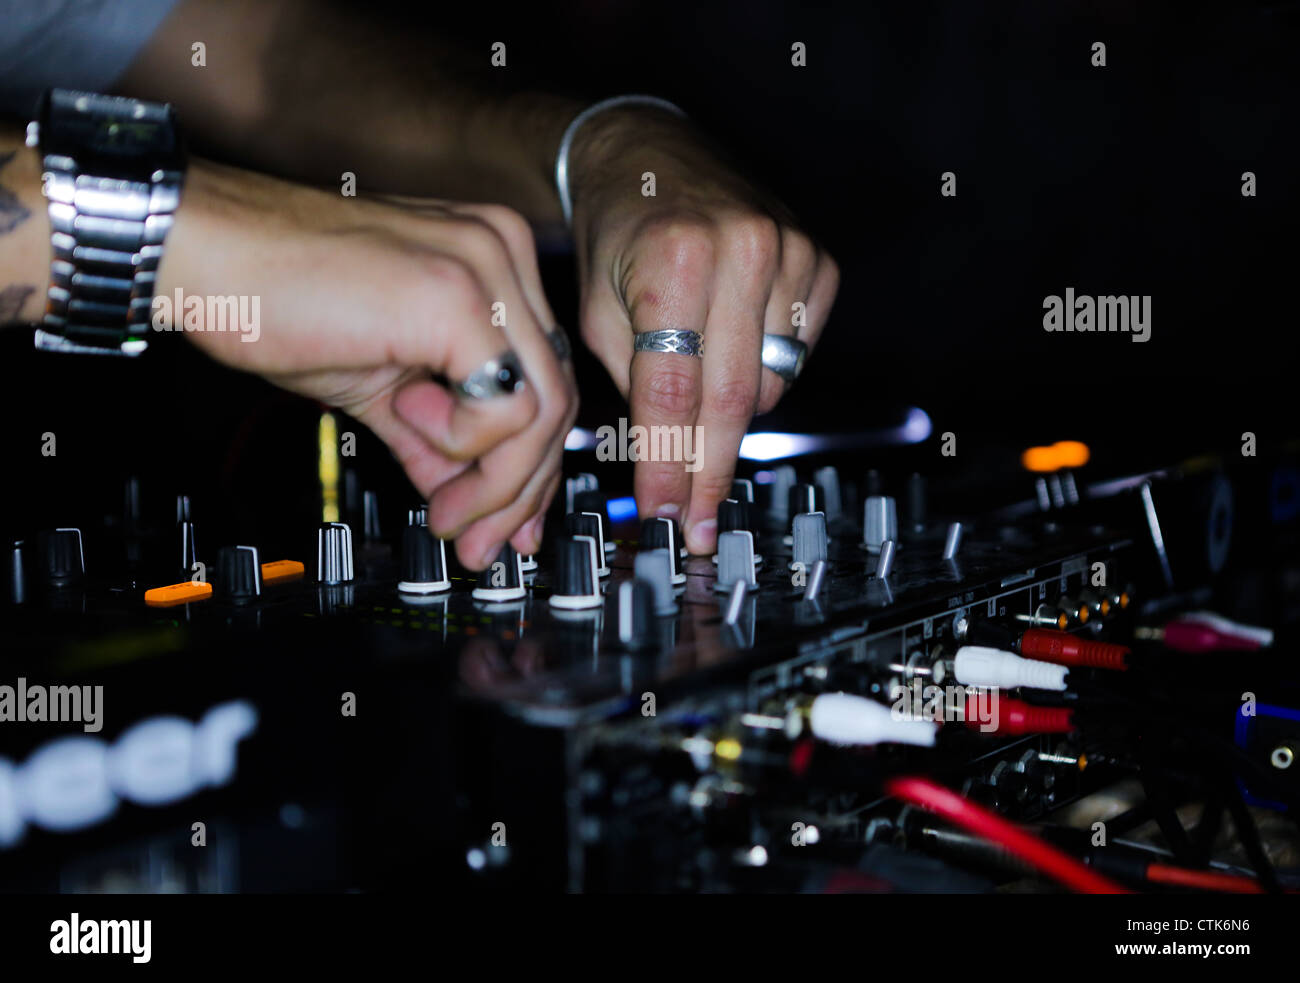 Dj turns dials - Stock Image